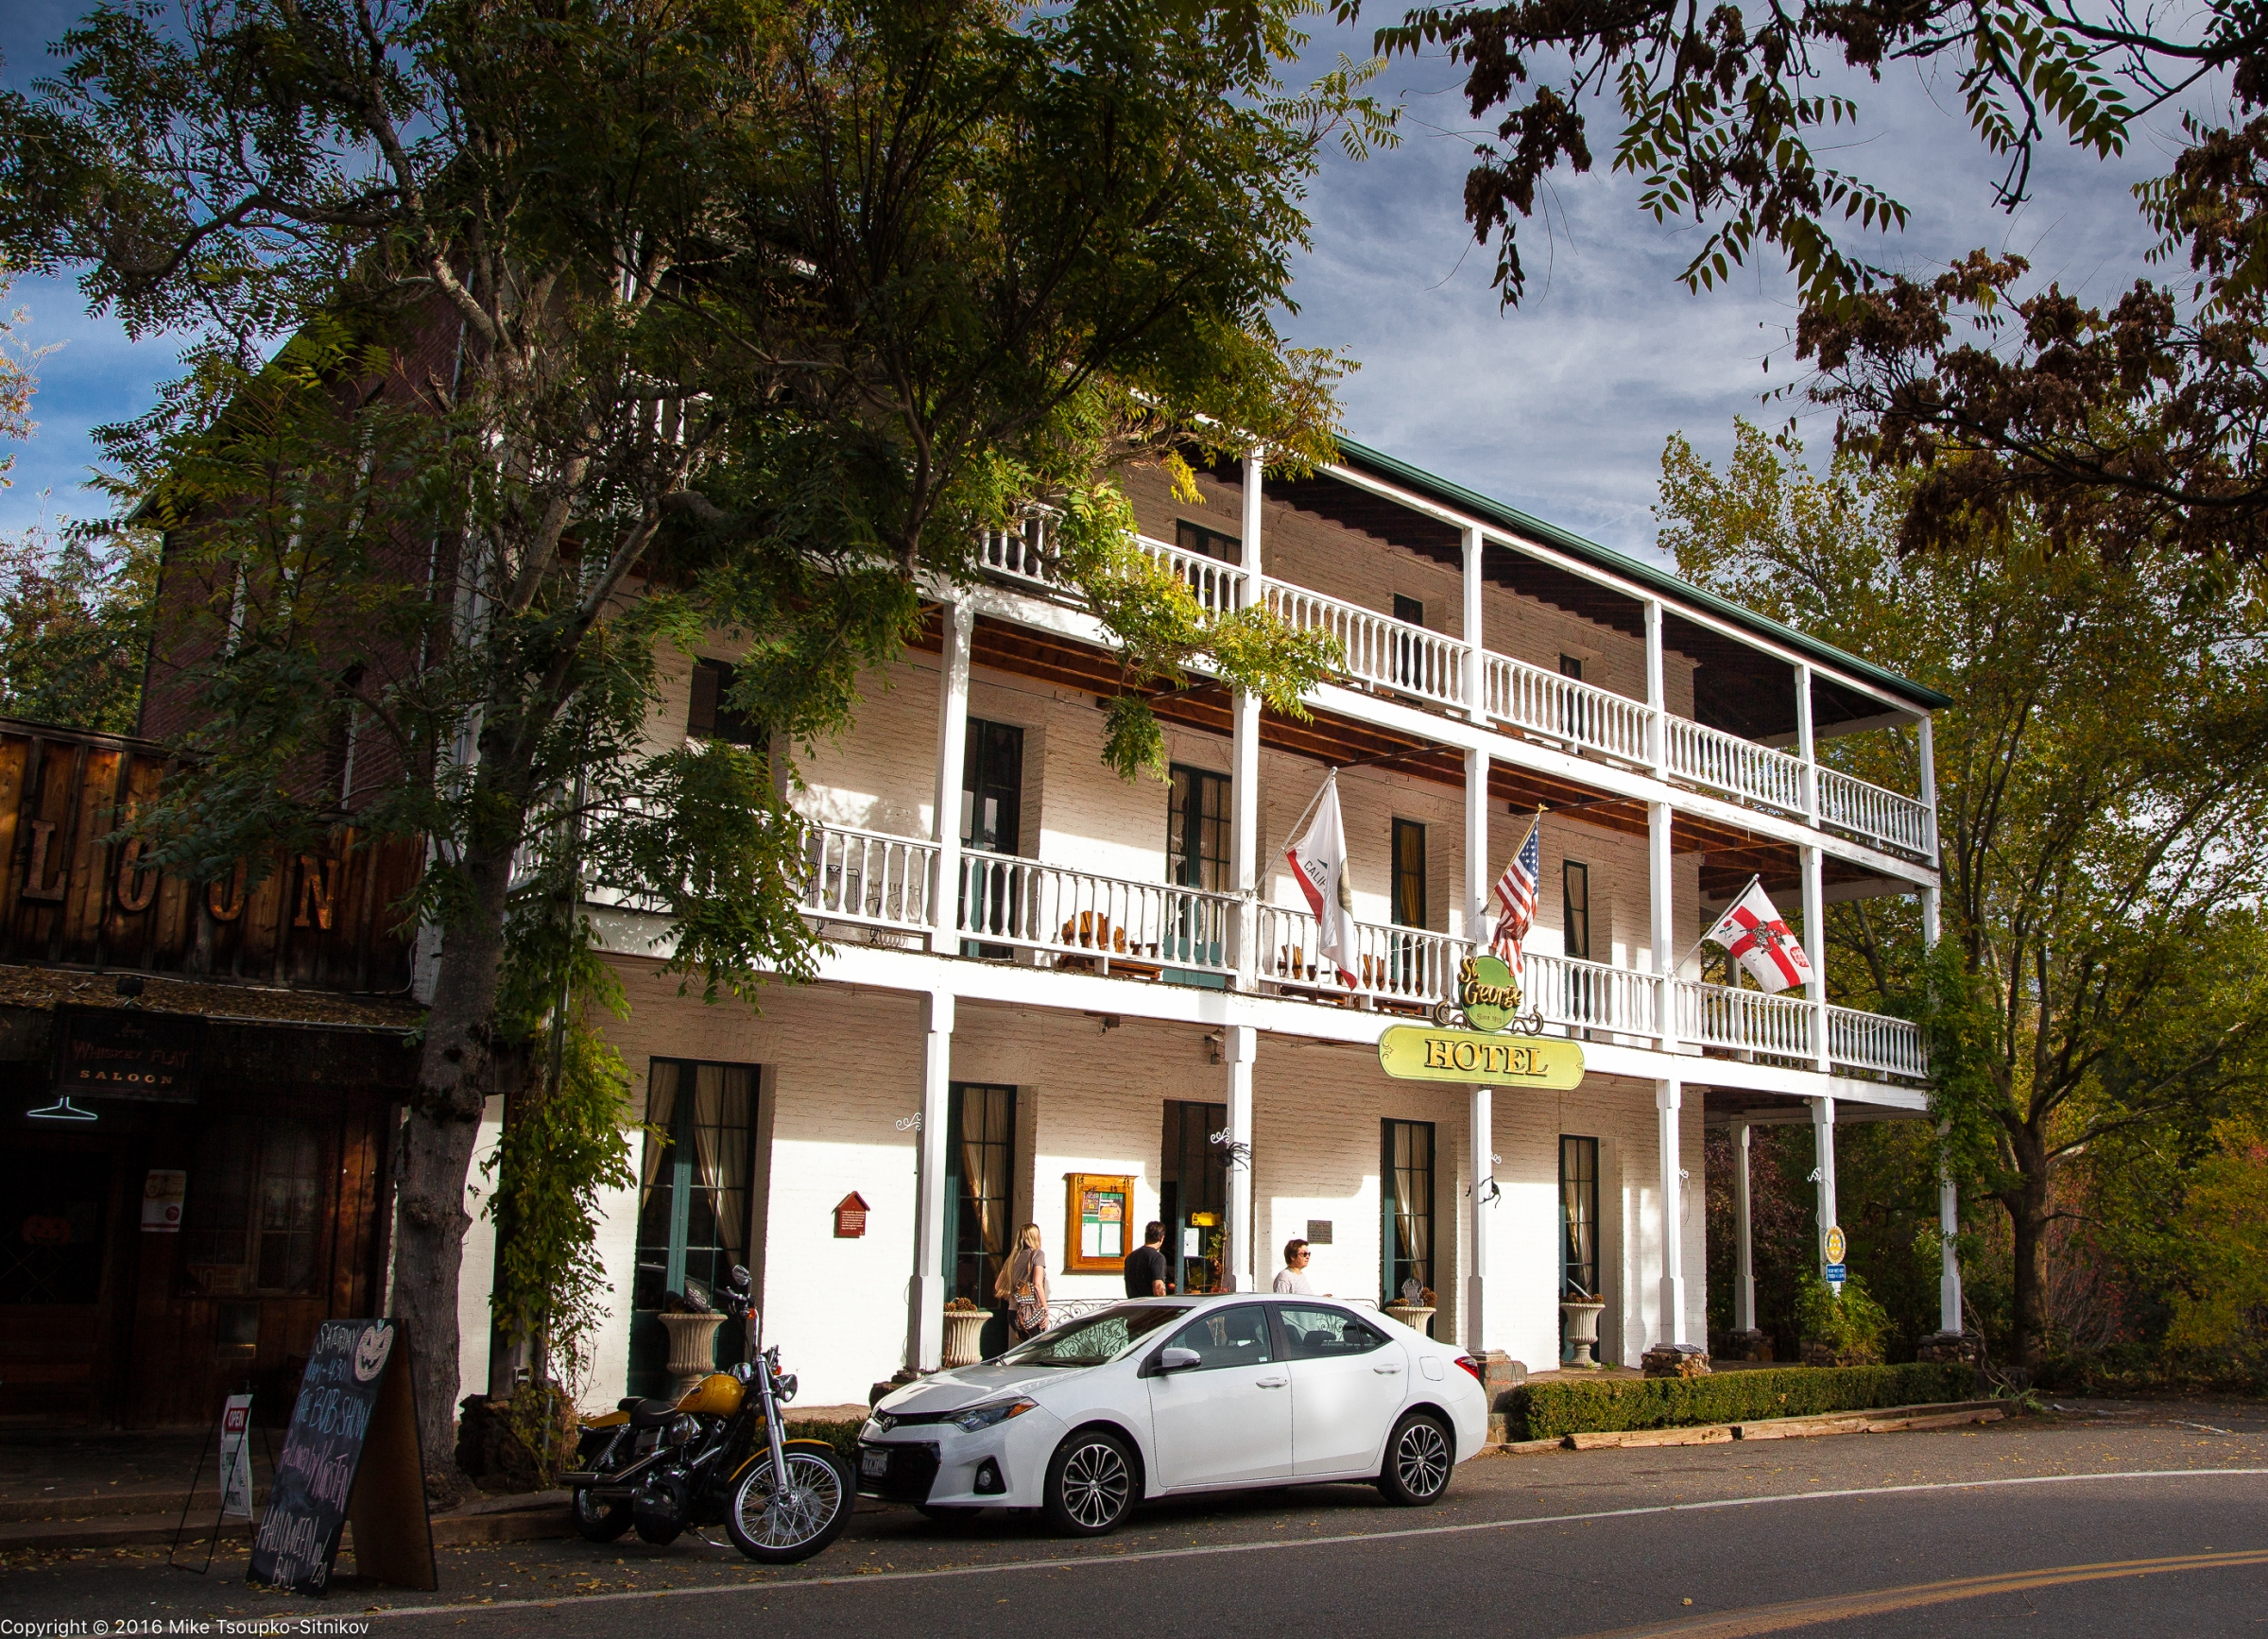 St. George Hotel in Volcano